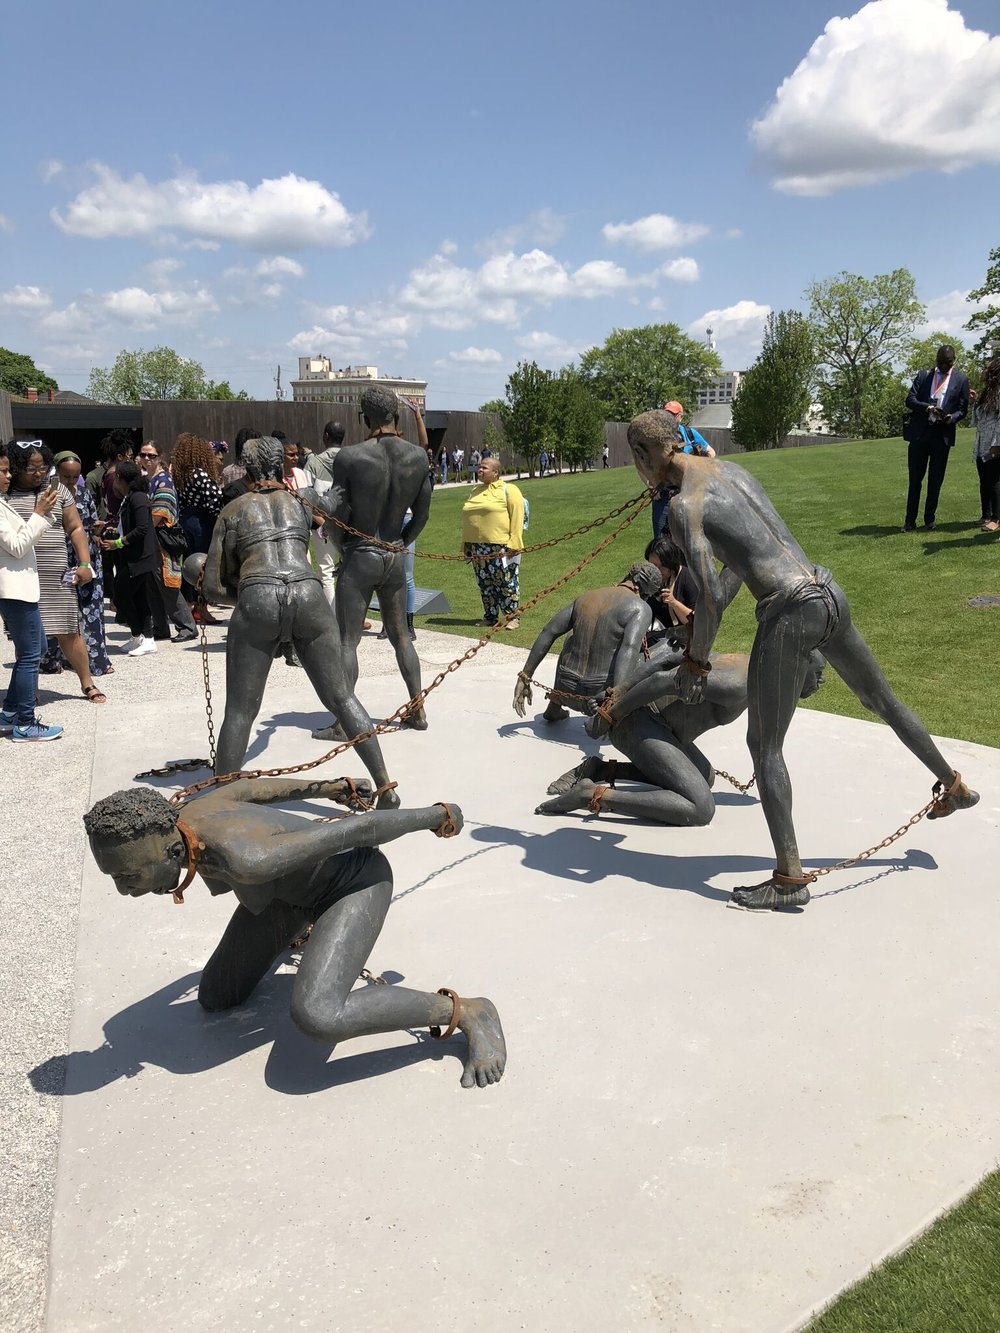 A sculpture by Kwame Akoto-Bamfo confronts visitors as they enter The National Memorial for Peace and Justice. (Photo by Jamie Blaine)